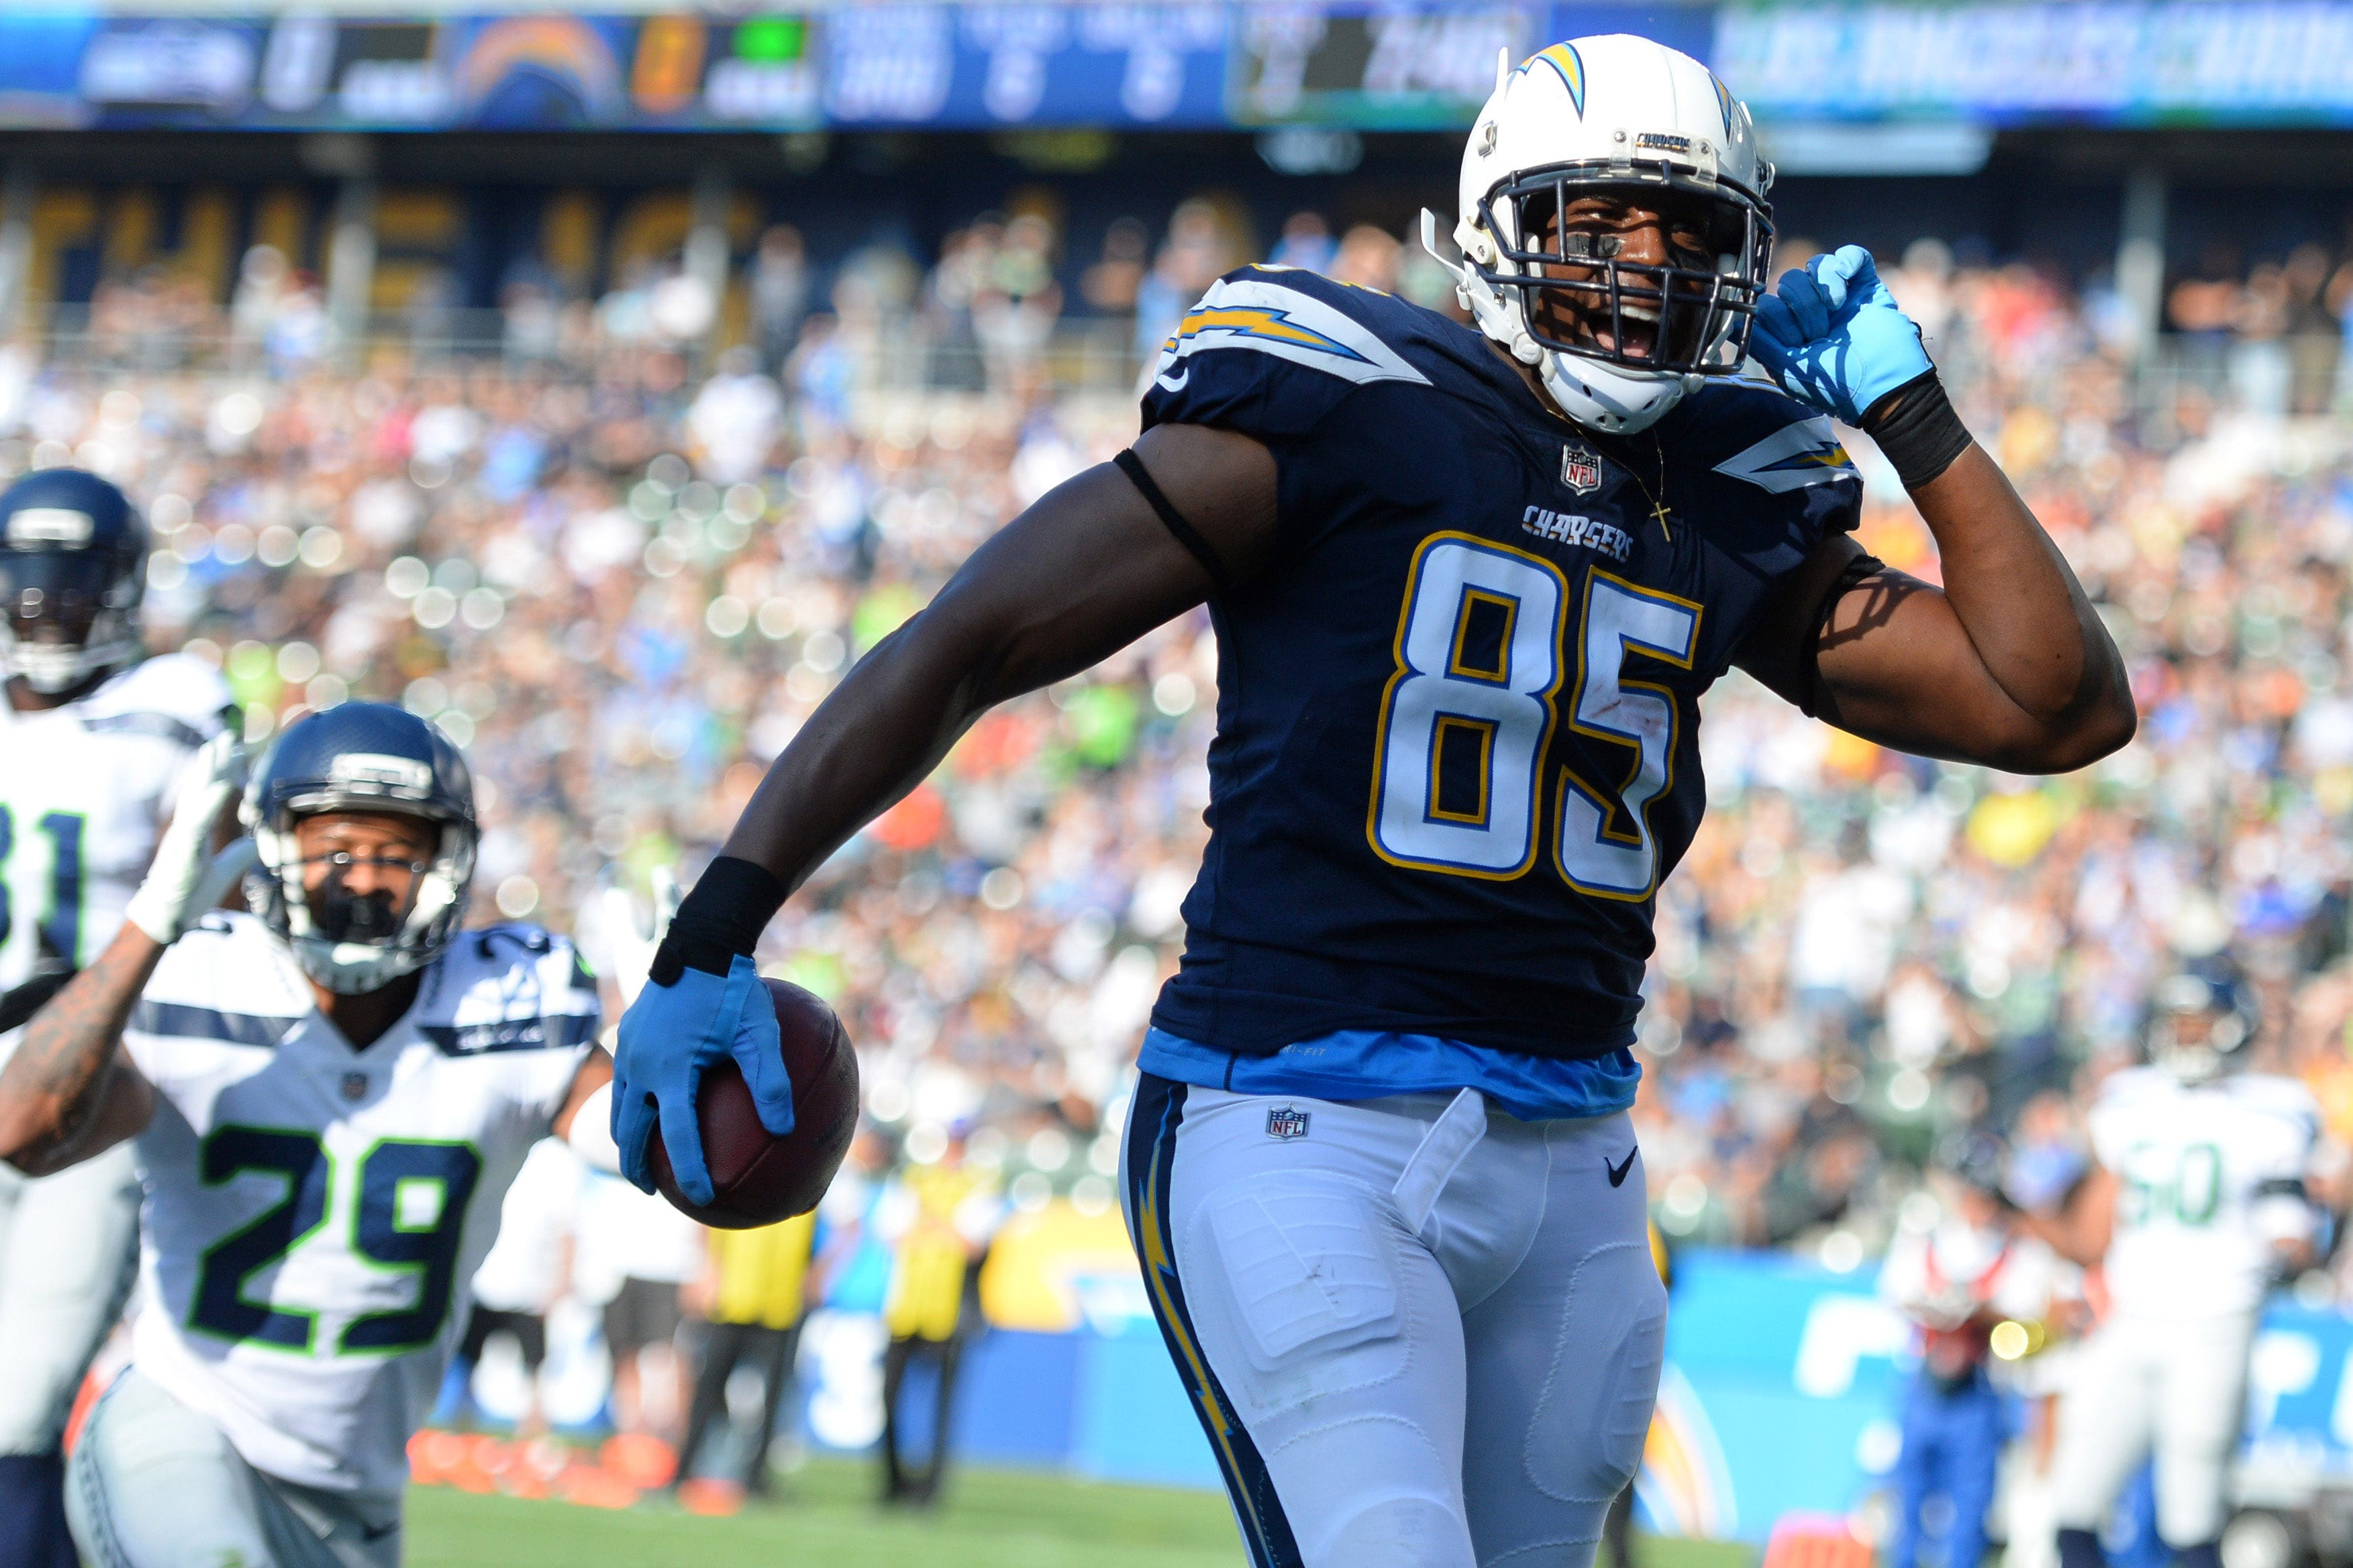 Antonio Gates retires from NFL after 16-year career with Chargers